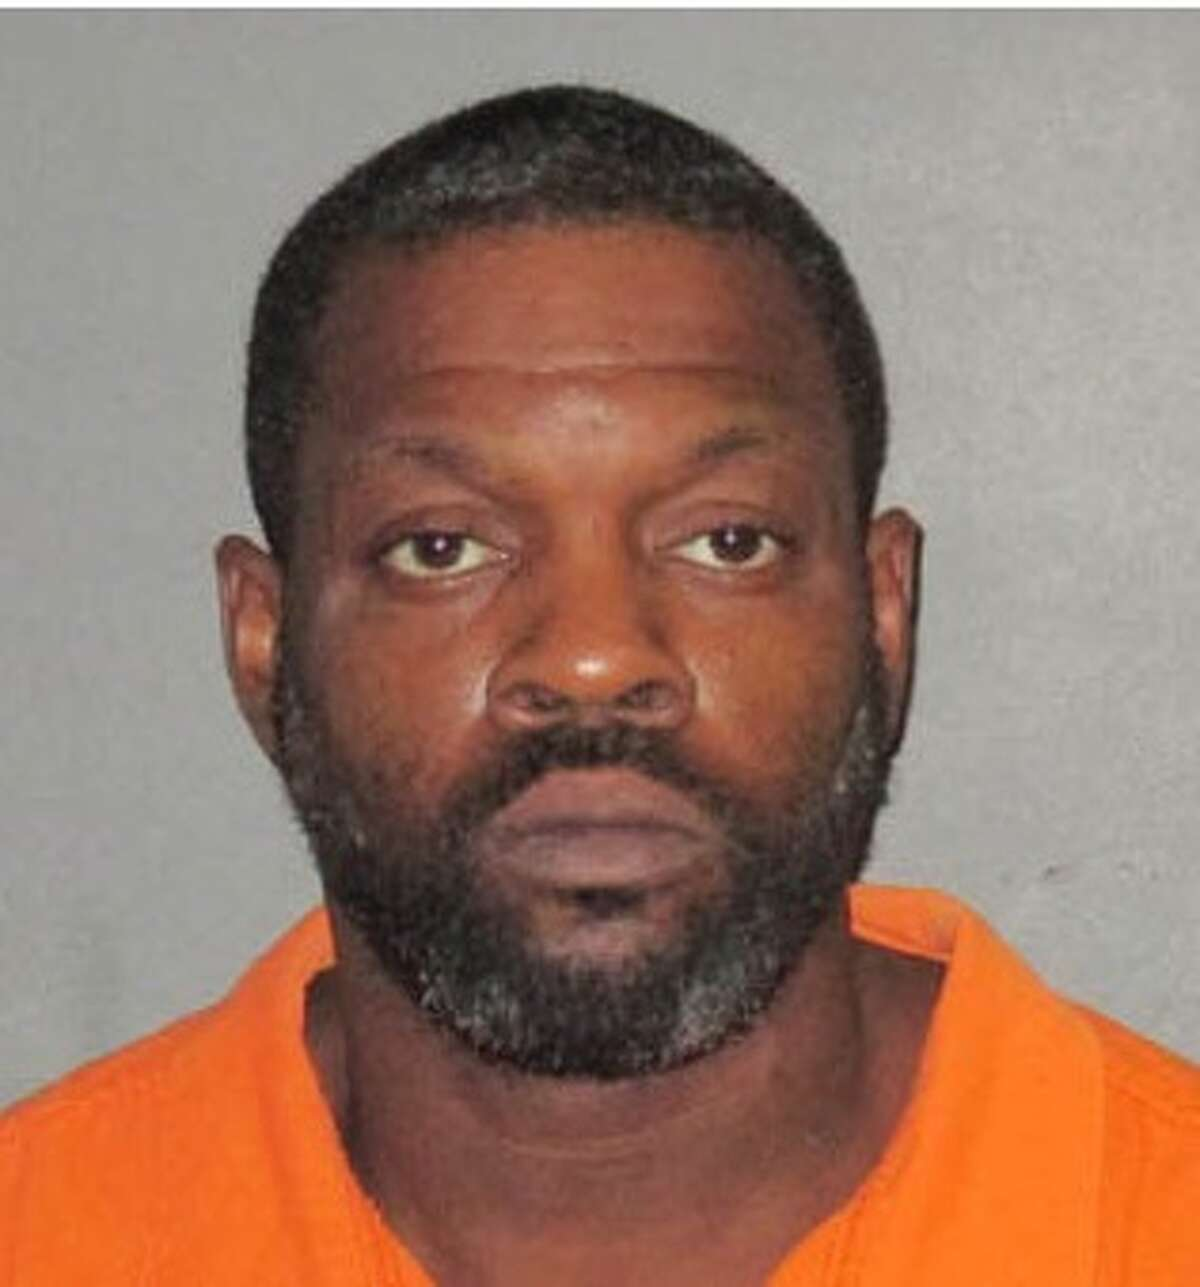 Jeremy Wayne Saylor, 35, was arrested by Baton Rouge police on after a violent encounter with police.